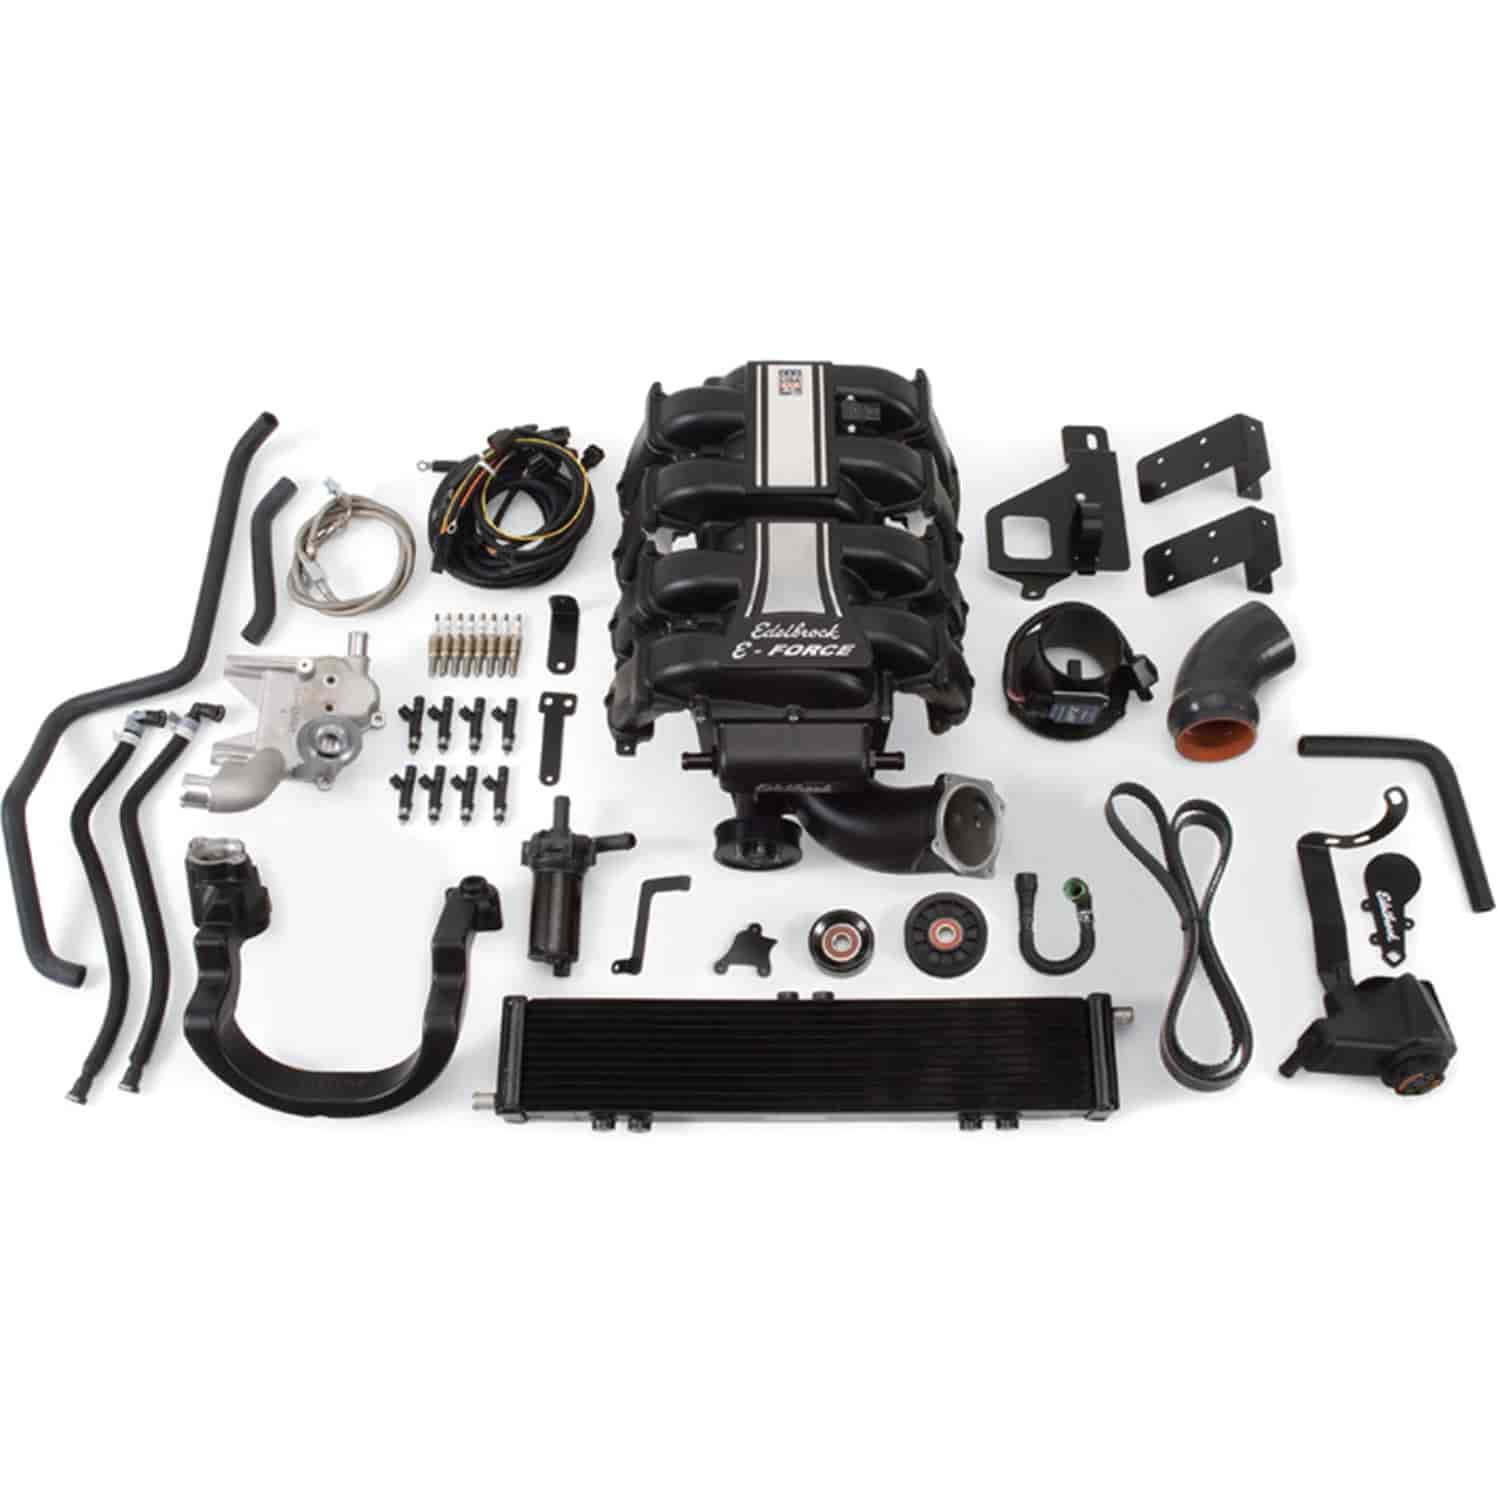 Edelbrock 15830 - Edelbrock E-Force Supercharger Kit For Ford F-150